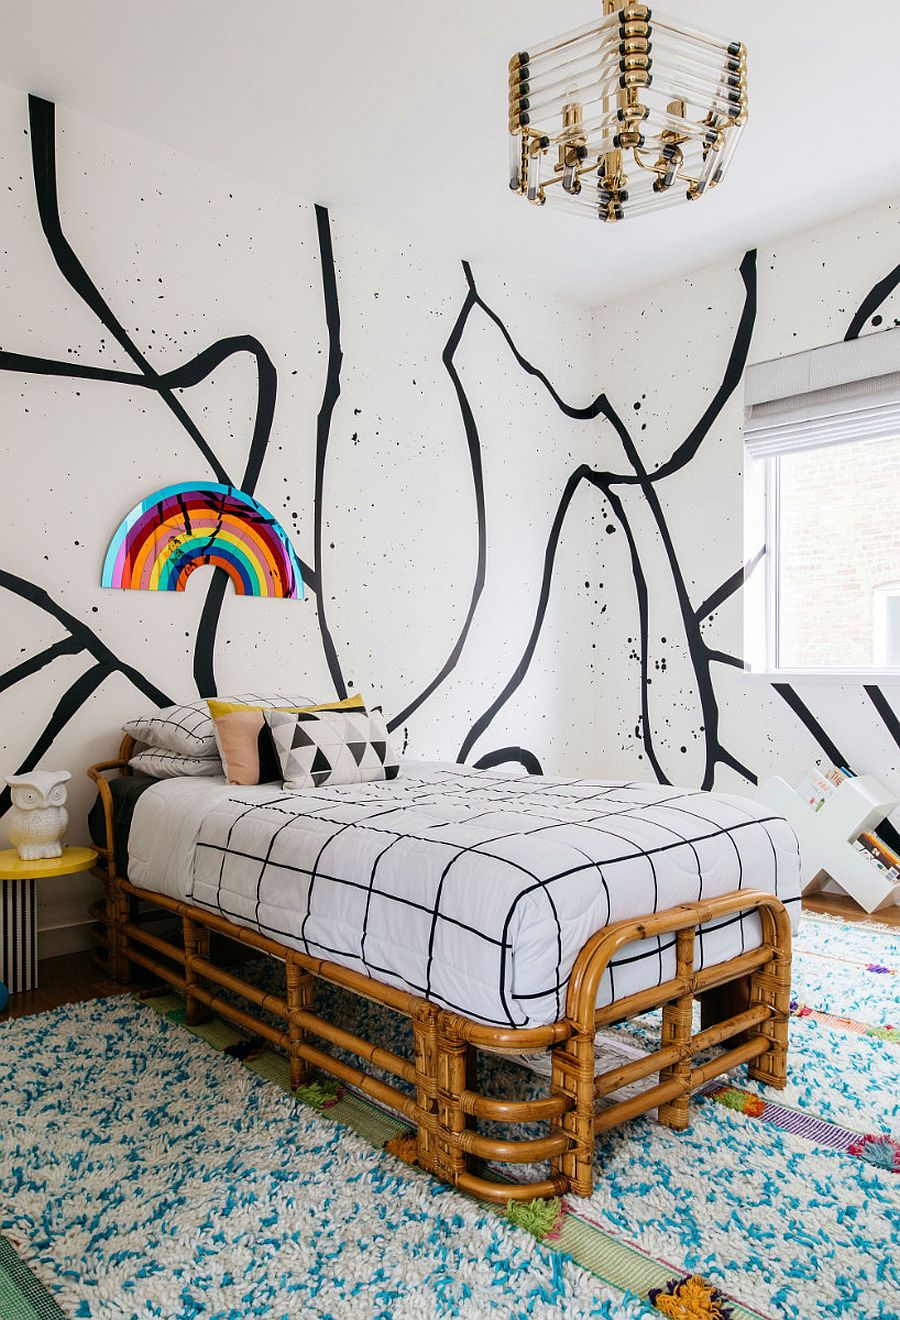 Adding trendy accents to the gender-neutral bedroom can turn it into a fabulous girls' room